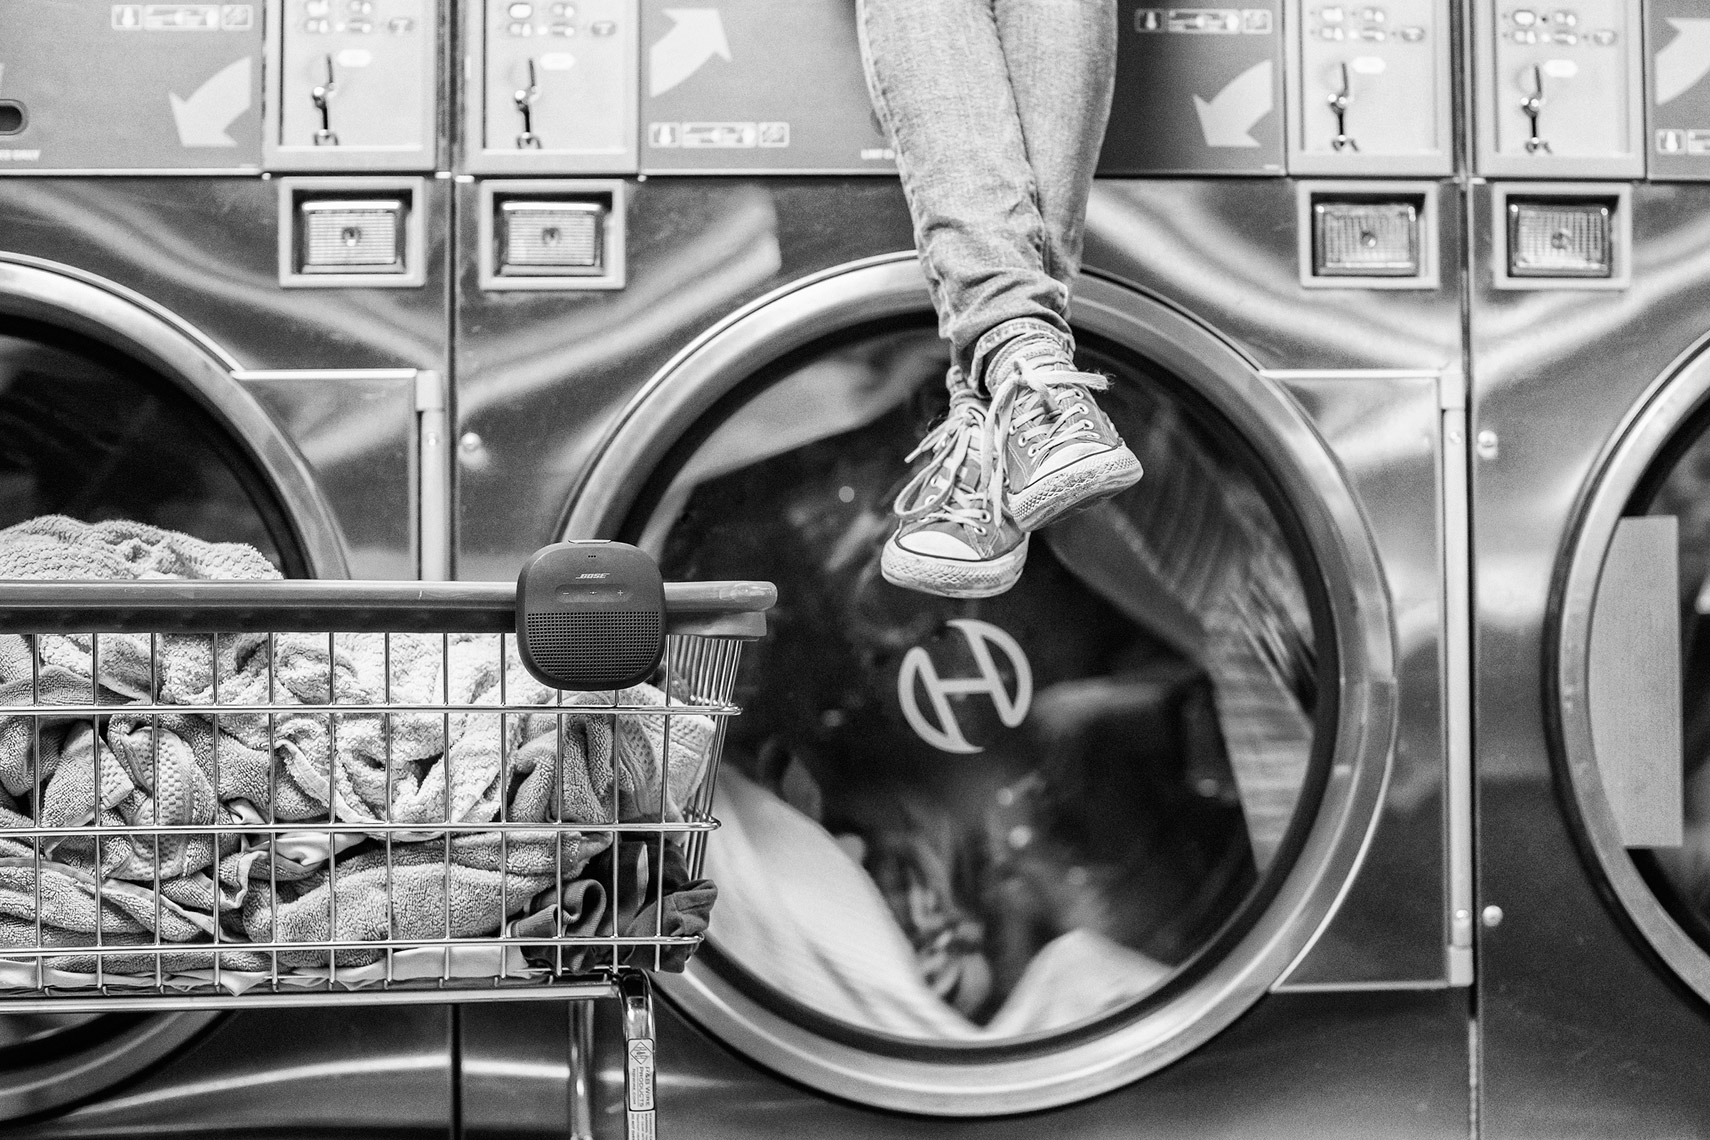 laundromat_bose_jussi_grznar-5335-BW